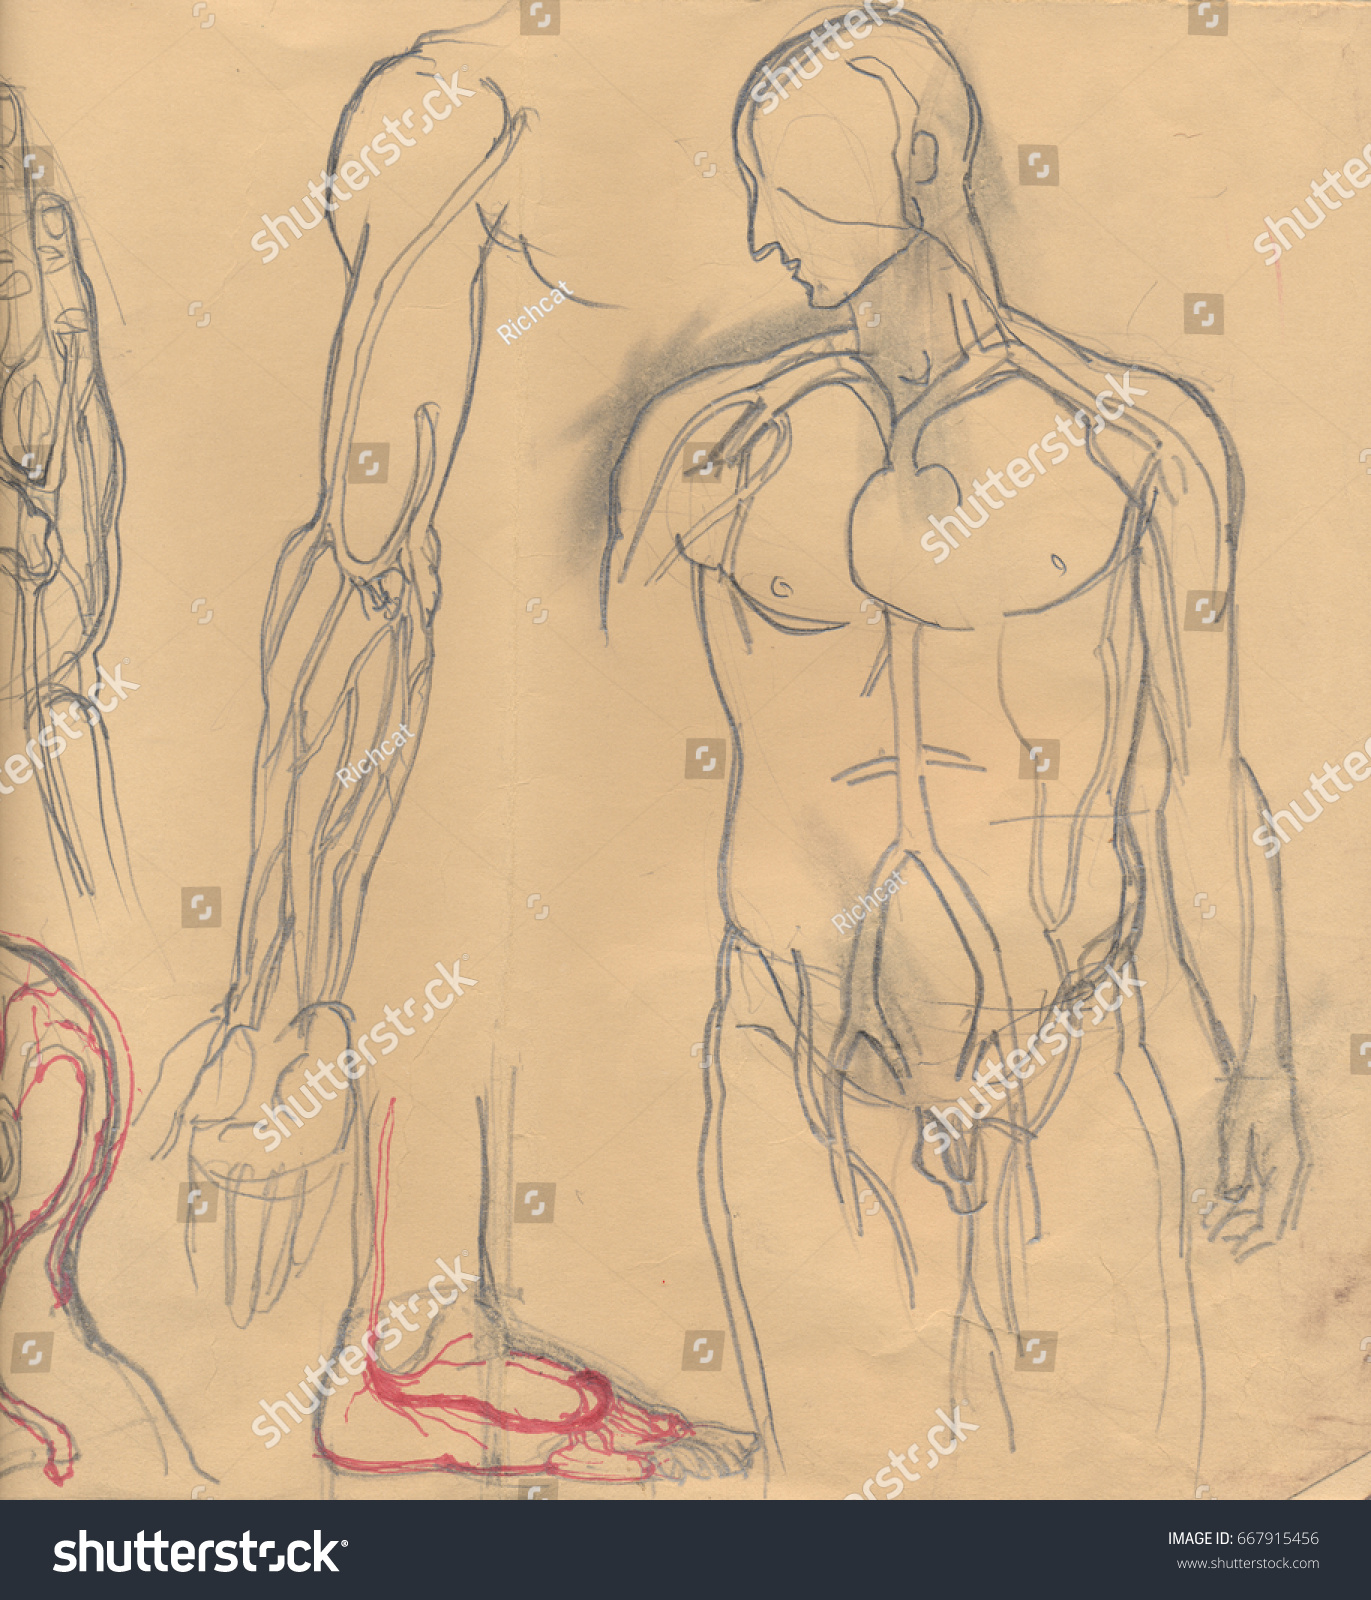 Illustration Graphics Contest Full Body Muscle Diagram For Hand Drawn Illustrations Different Human Stock Of Parts Emphasizing The Blood Vessels Artistic Anatomy Graphic